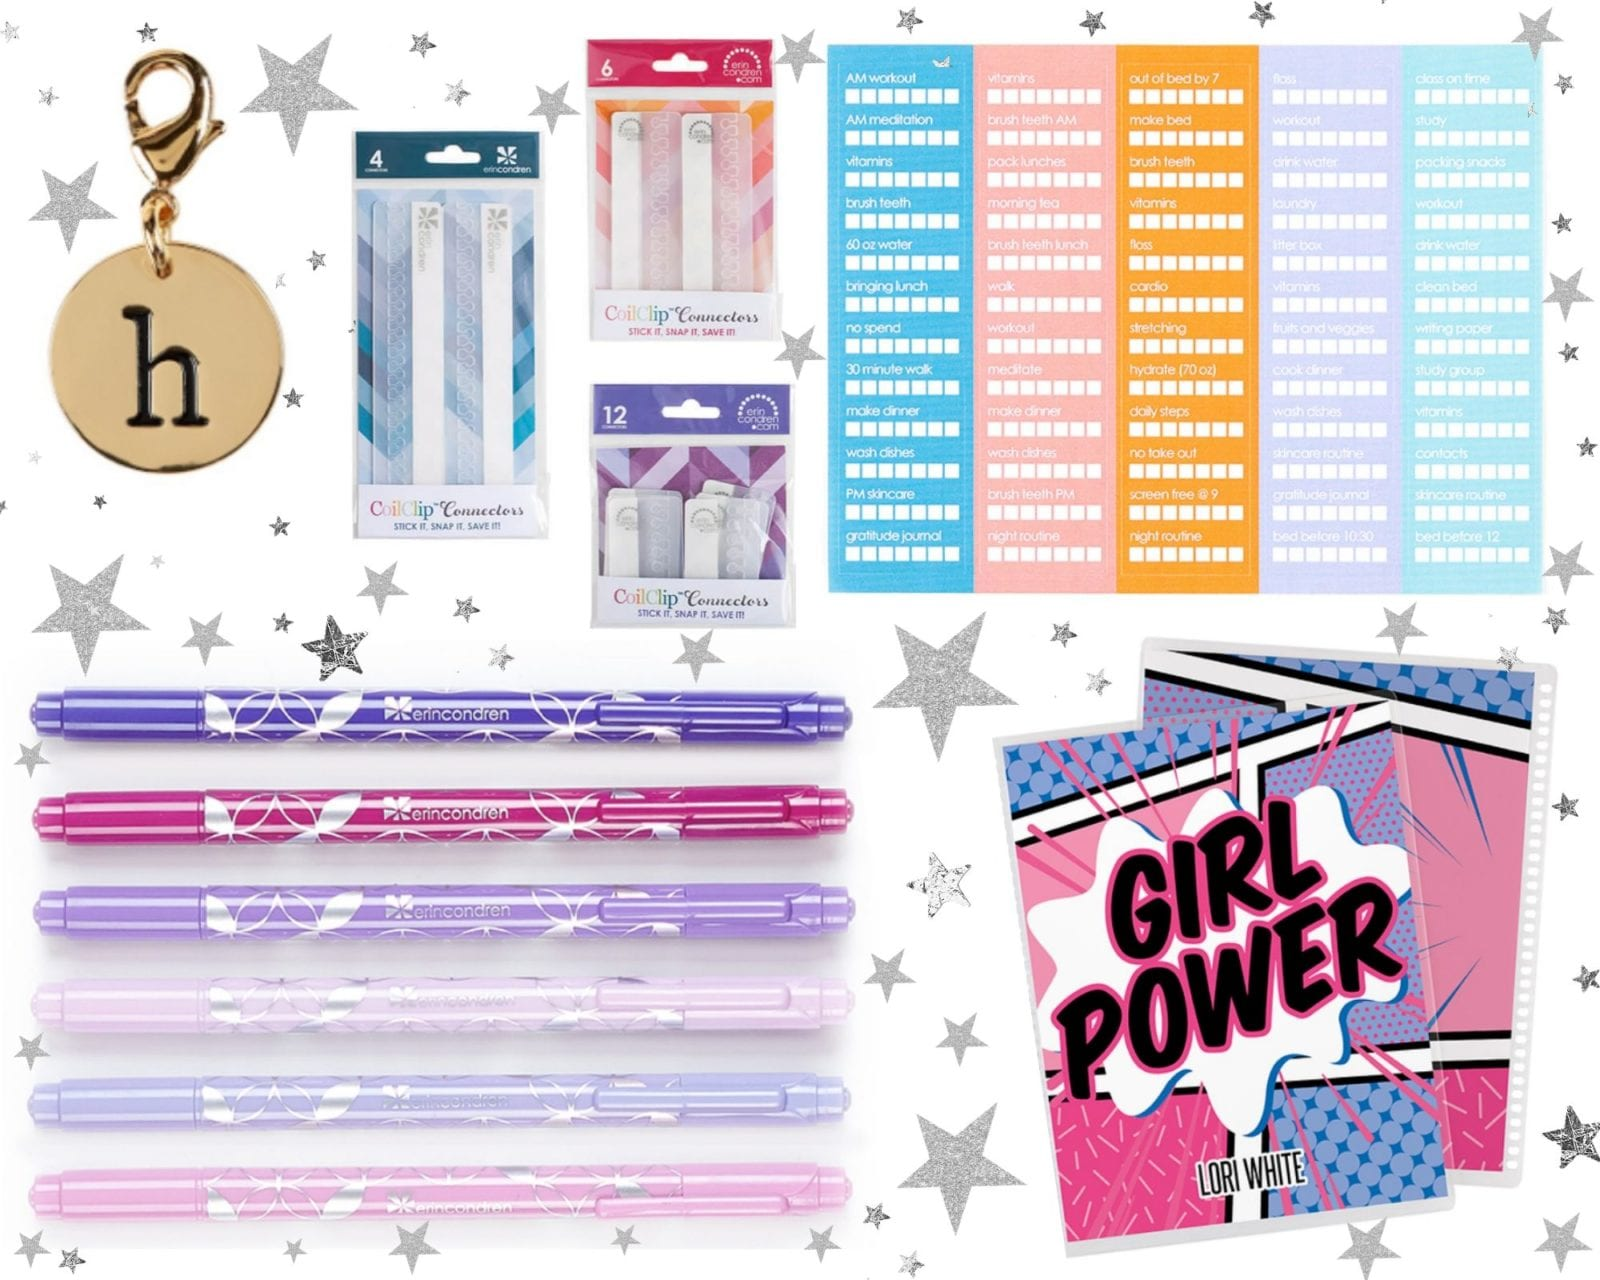 this image is a collage of the various products we talked about in this post including stickers, felt-tip markers, the life planner from Erin Condren, planner charms, and various planner accessories!